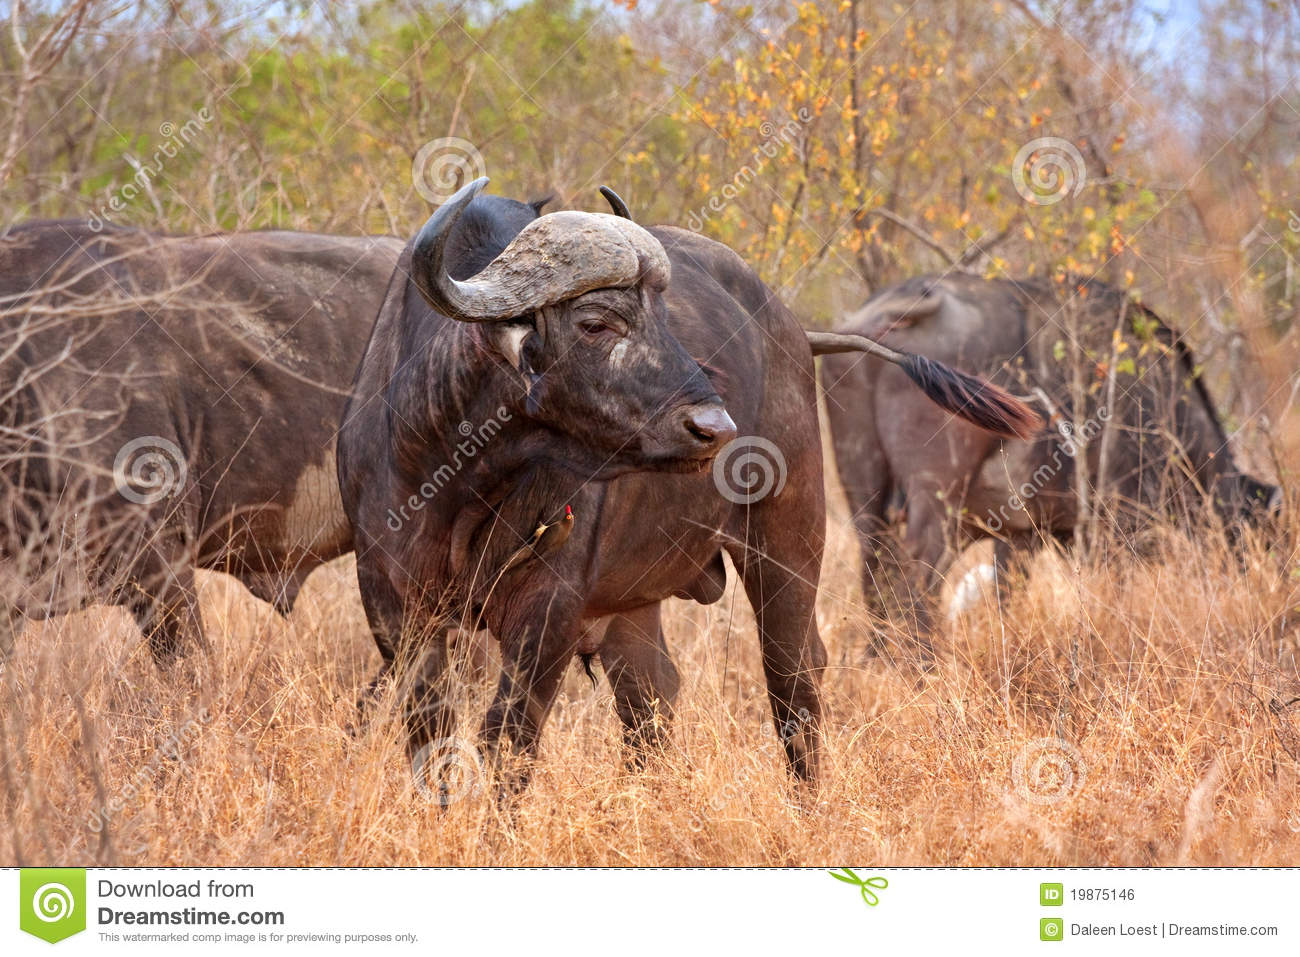 map of south africa showing kruger national park with Royalty Free Stock Image African Cape Buffalo Image19875146 on Henties bay namibia further 775501 besides Africa In Perspective as well Royalty Free Stock Image African Cape Buffalo Image19875146 likewise Western cape ac modation.